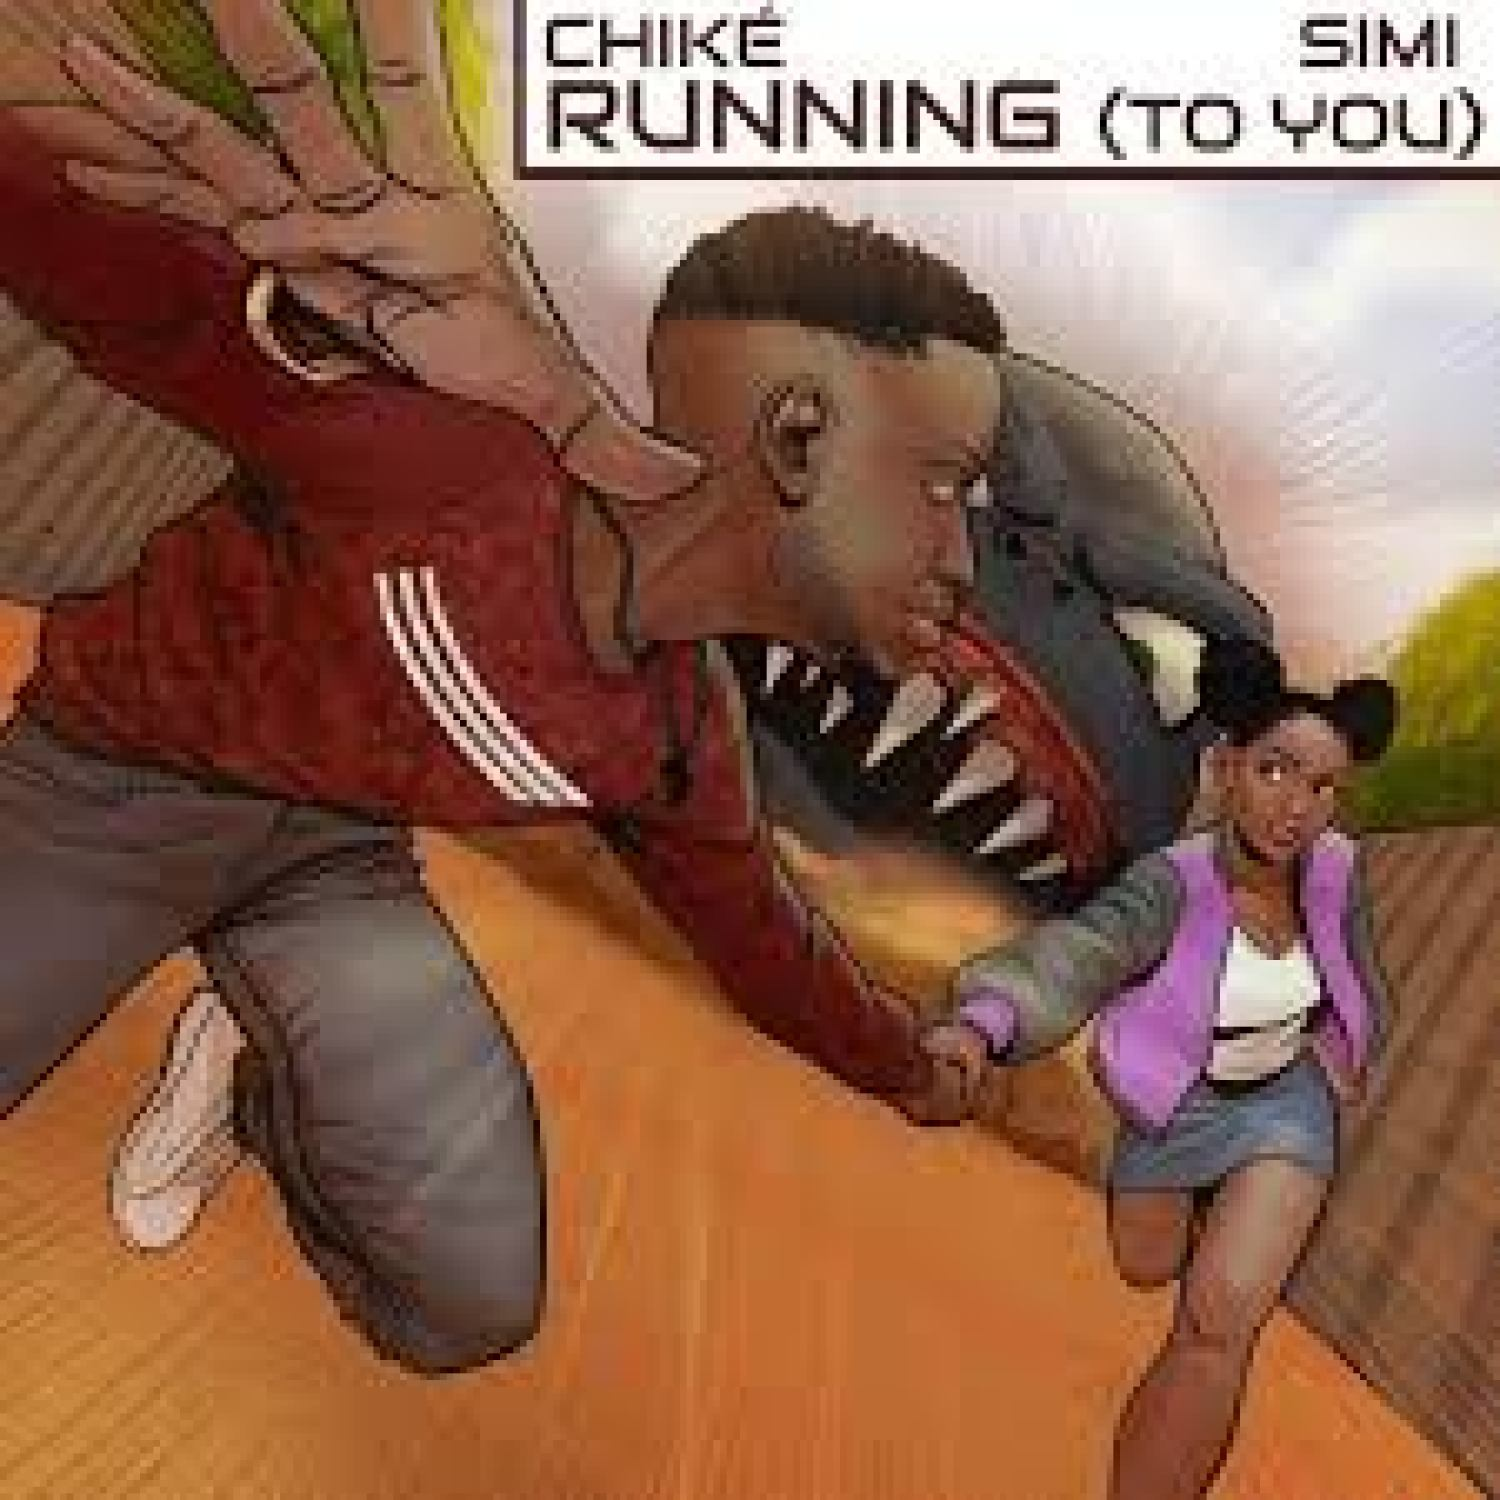 DOWNLOAD MP3: Chike – Running (To You) ft. Simi (Free MP3) AUDIO 320kbps